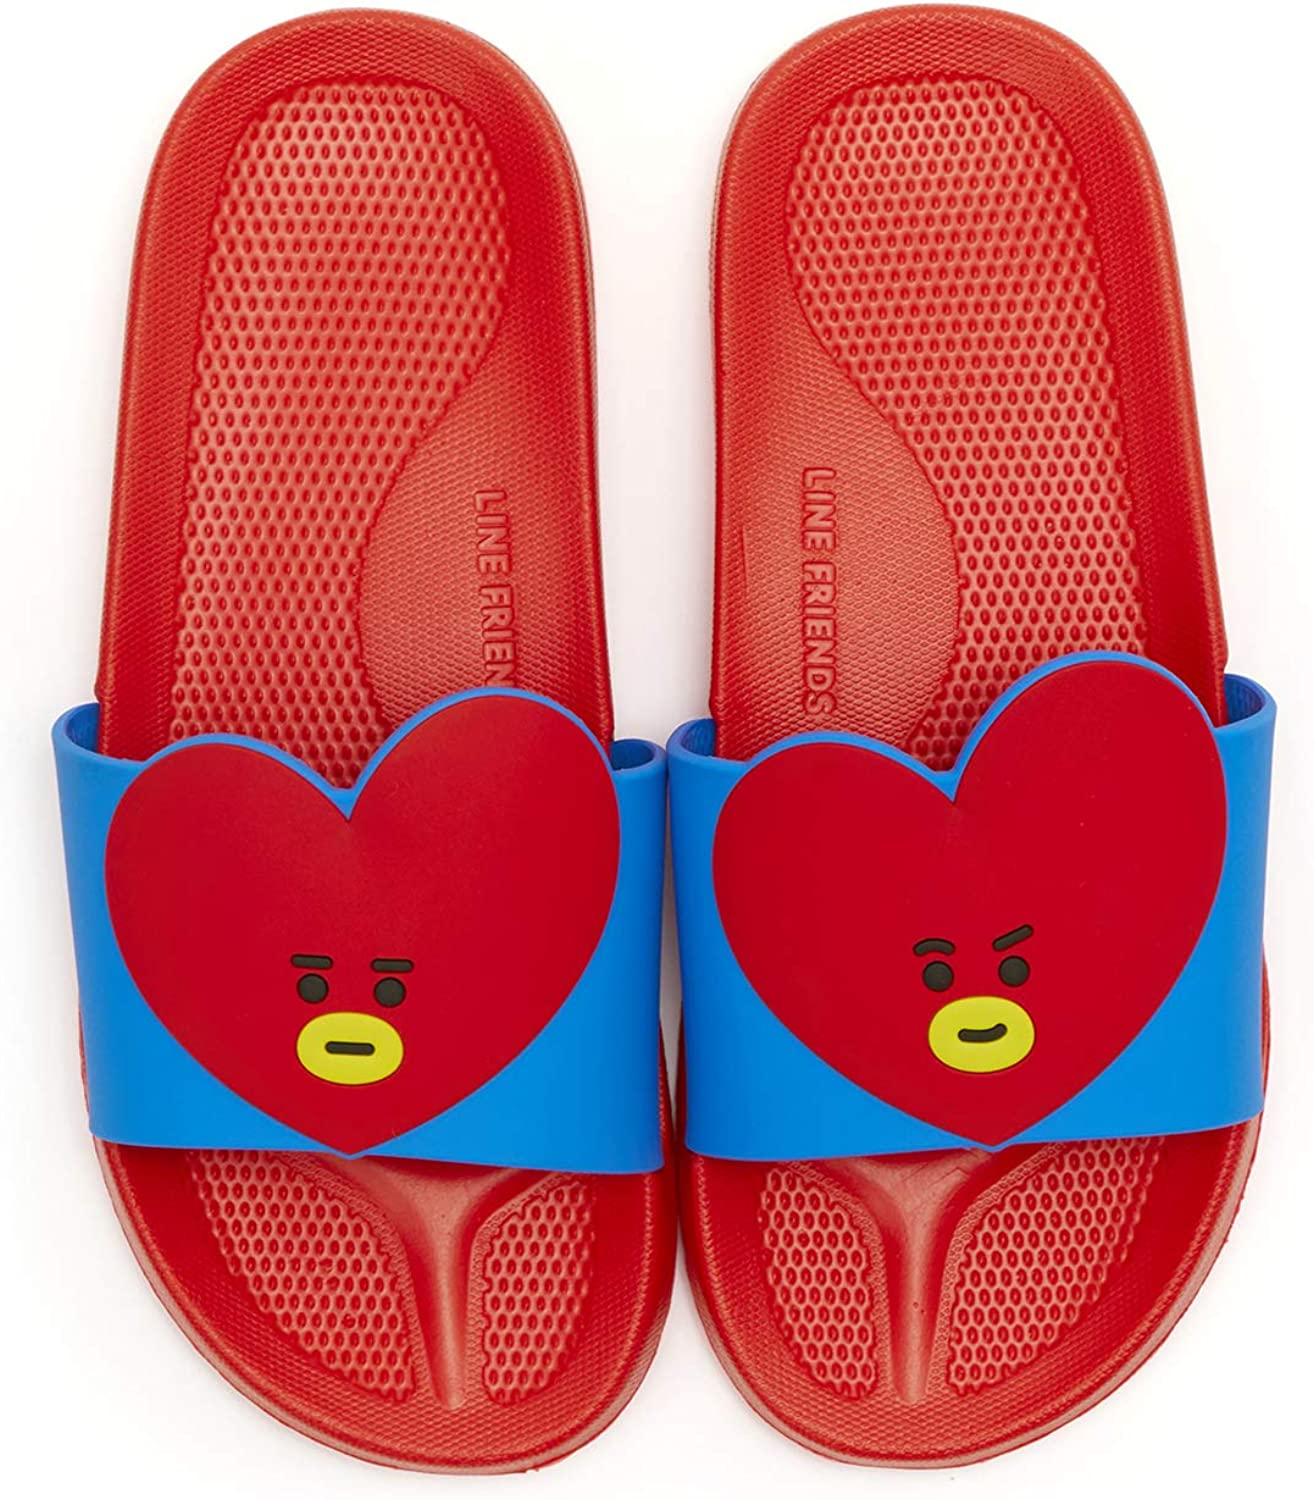 LINE FRIENDS BT21 Official Merchandise TATA Character PVC Indoor House Slippers, Size 6 Red